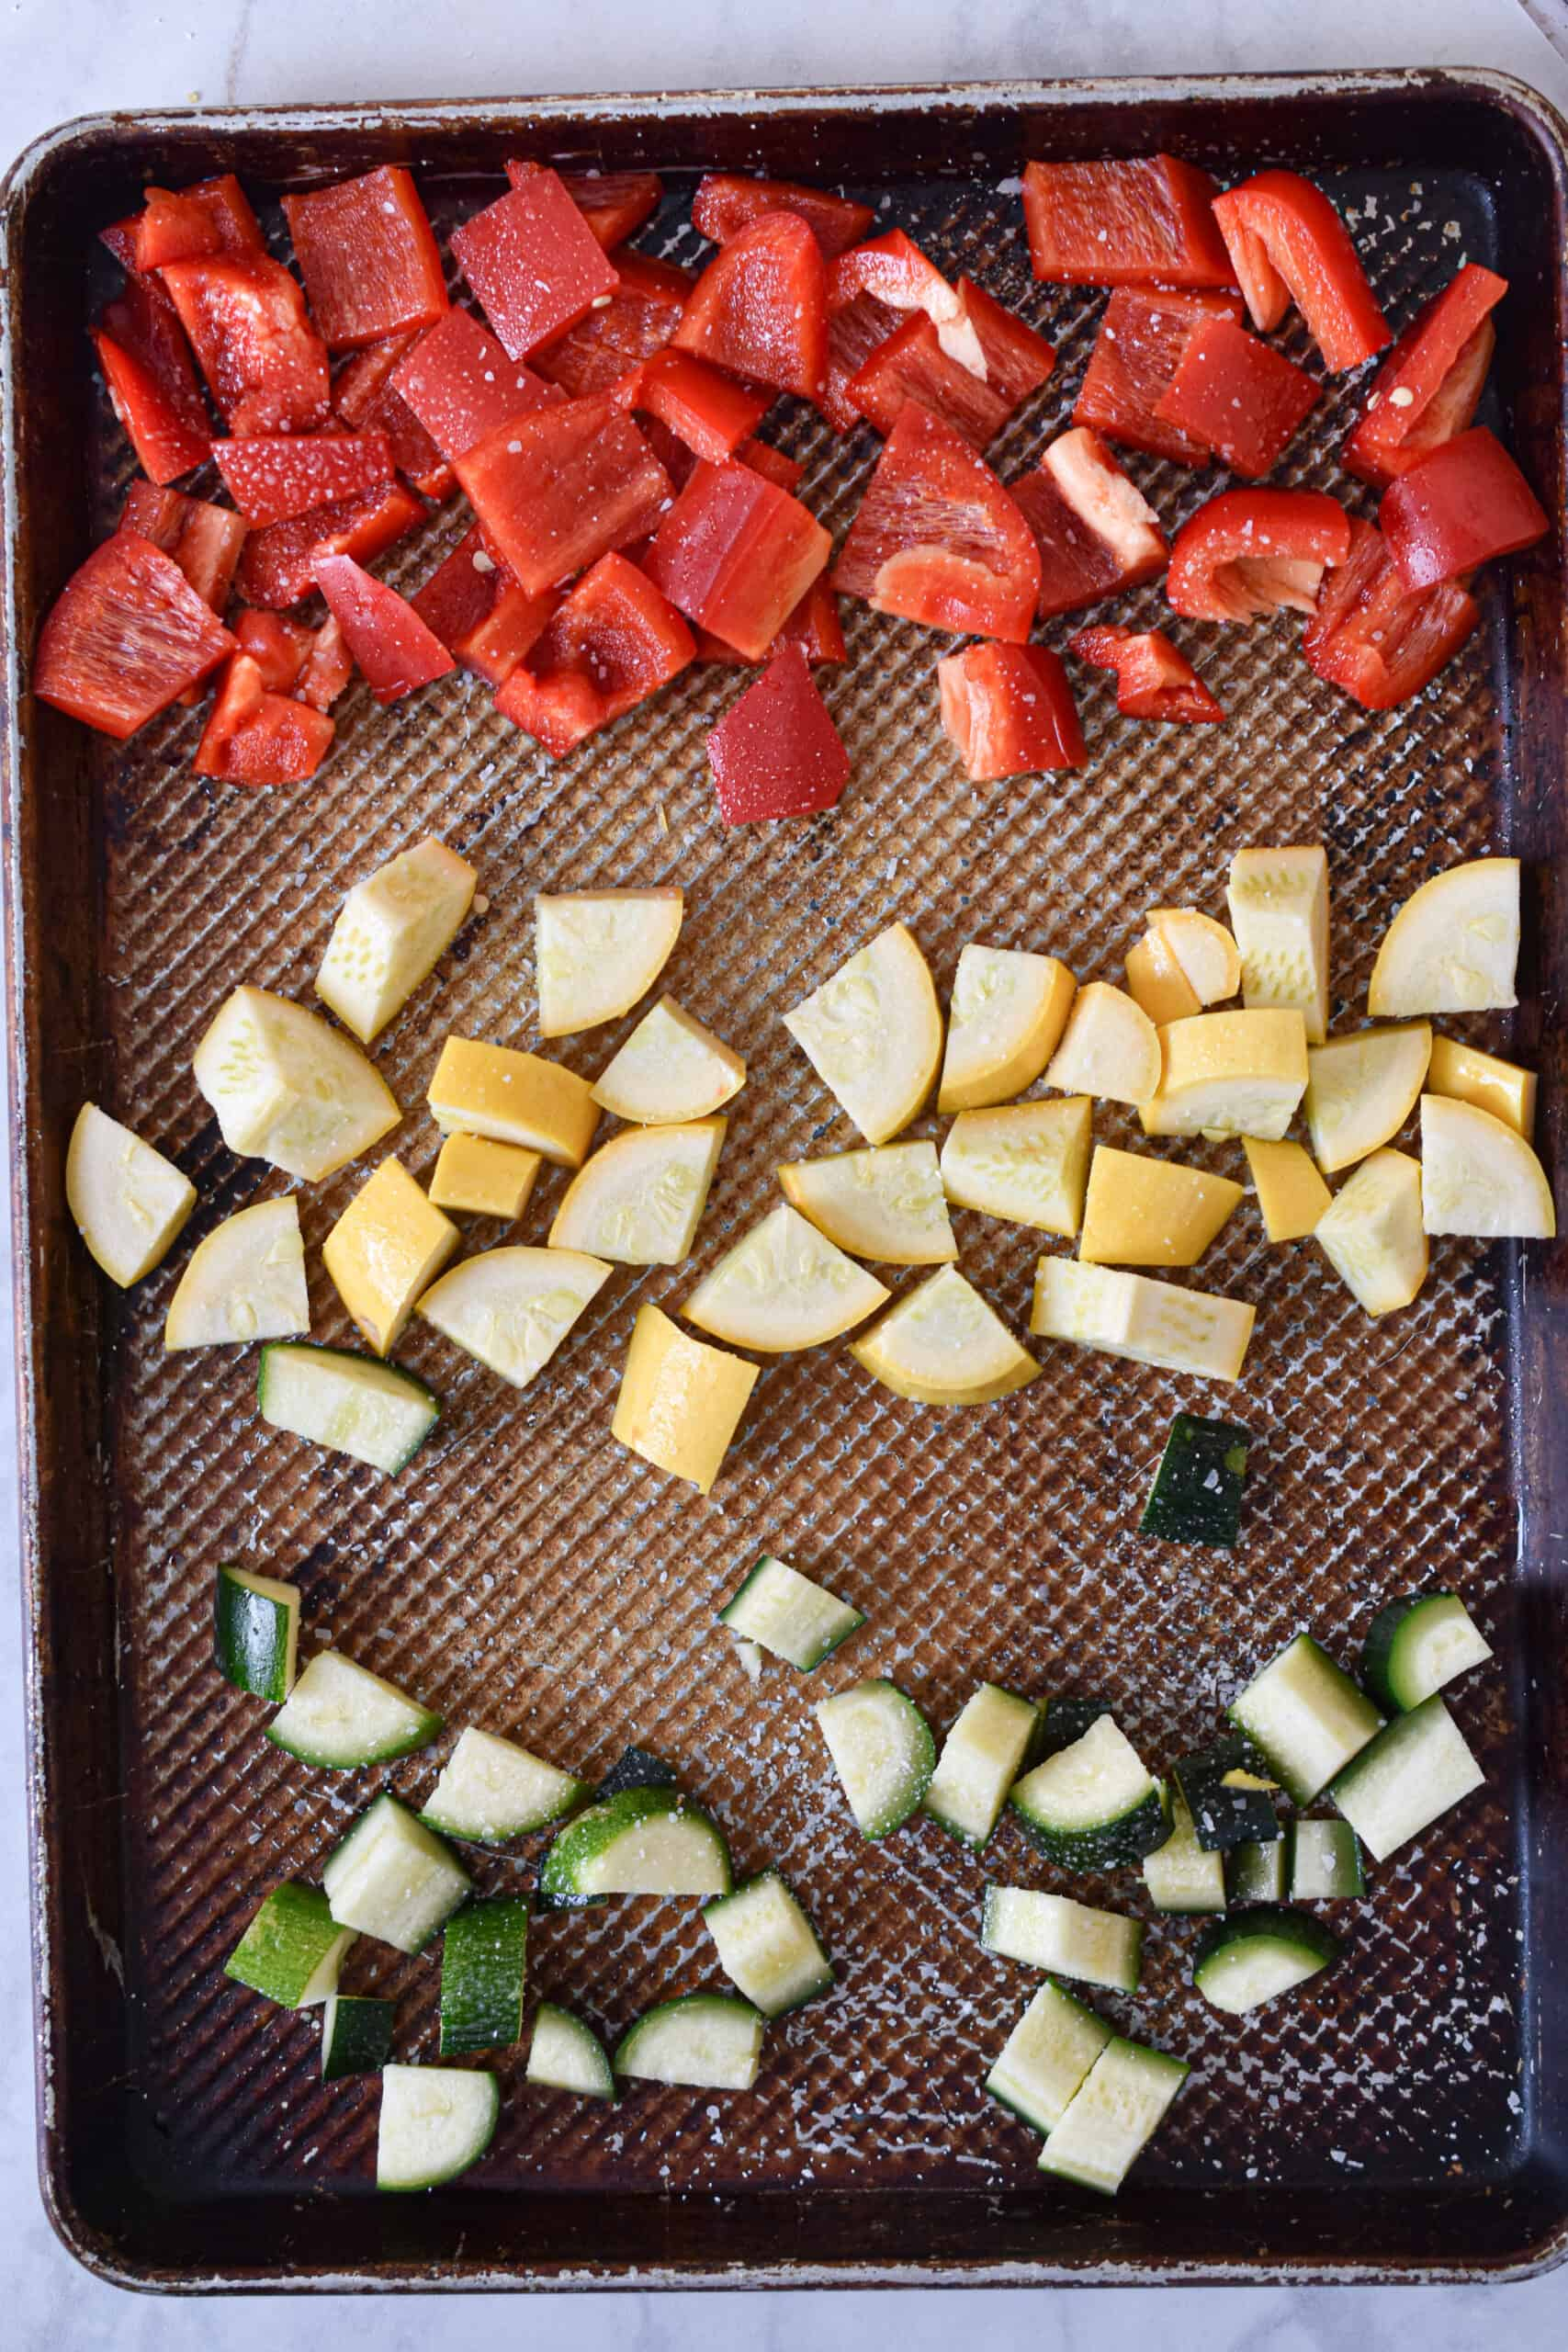 Cut the vegetables into bite sized pieces and roast for 20 minutes